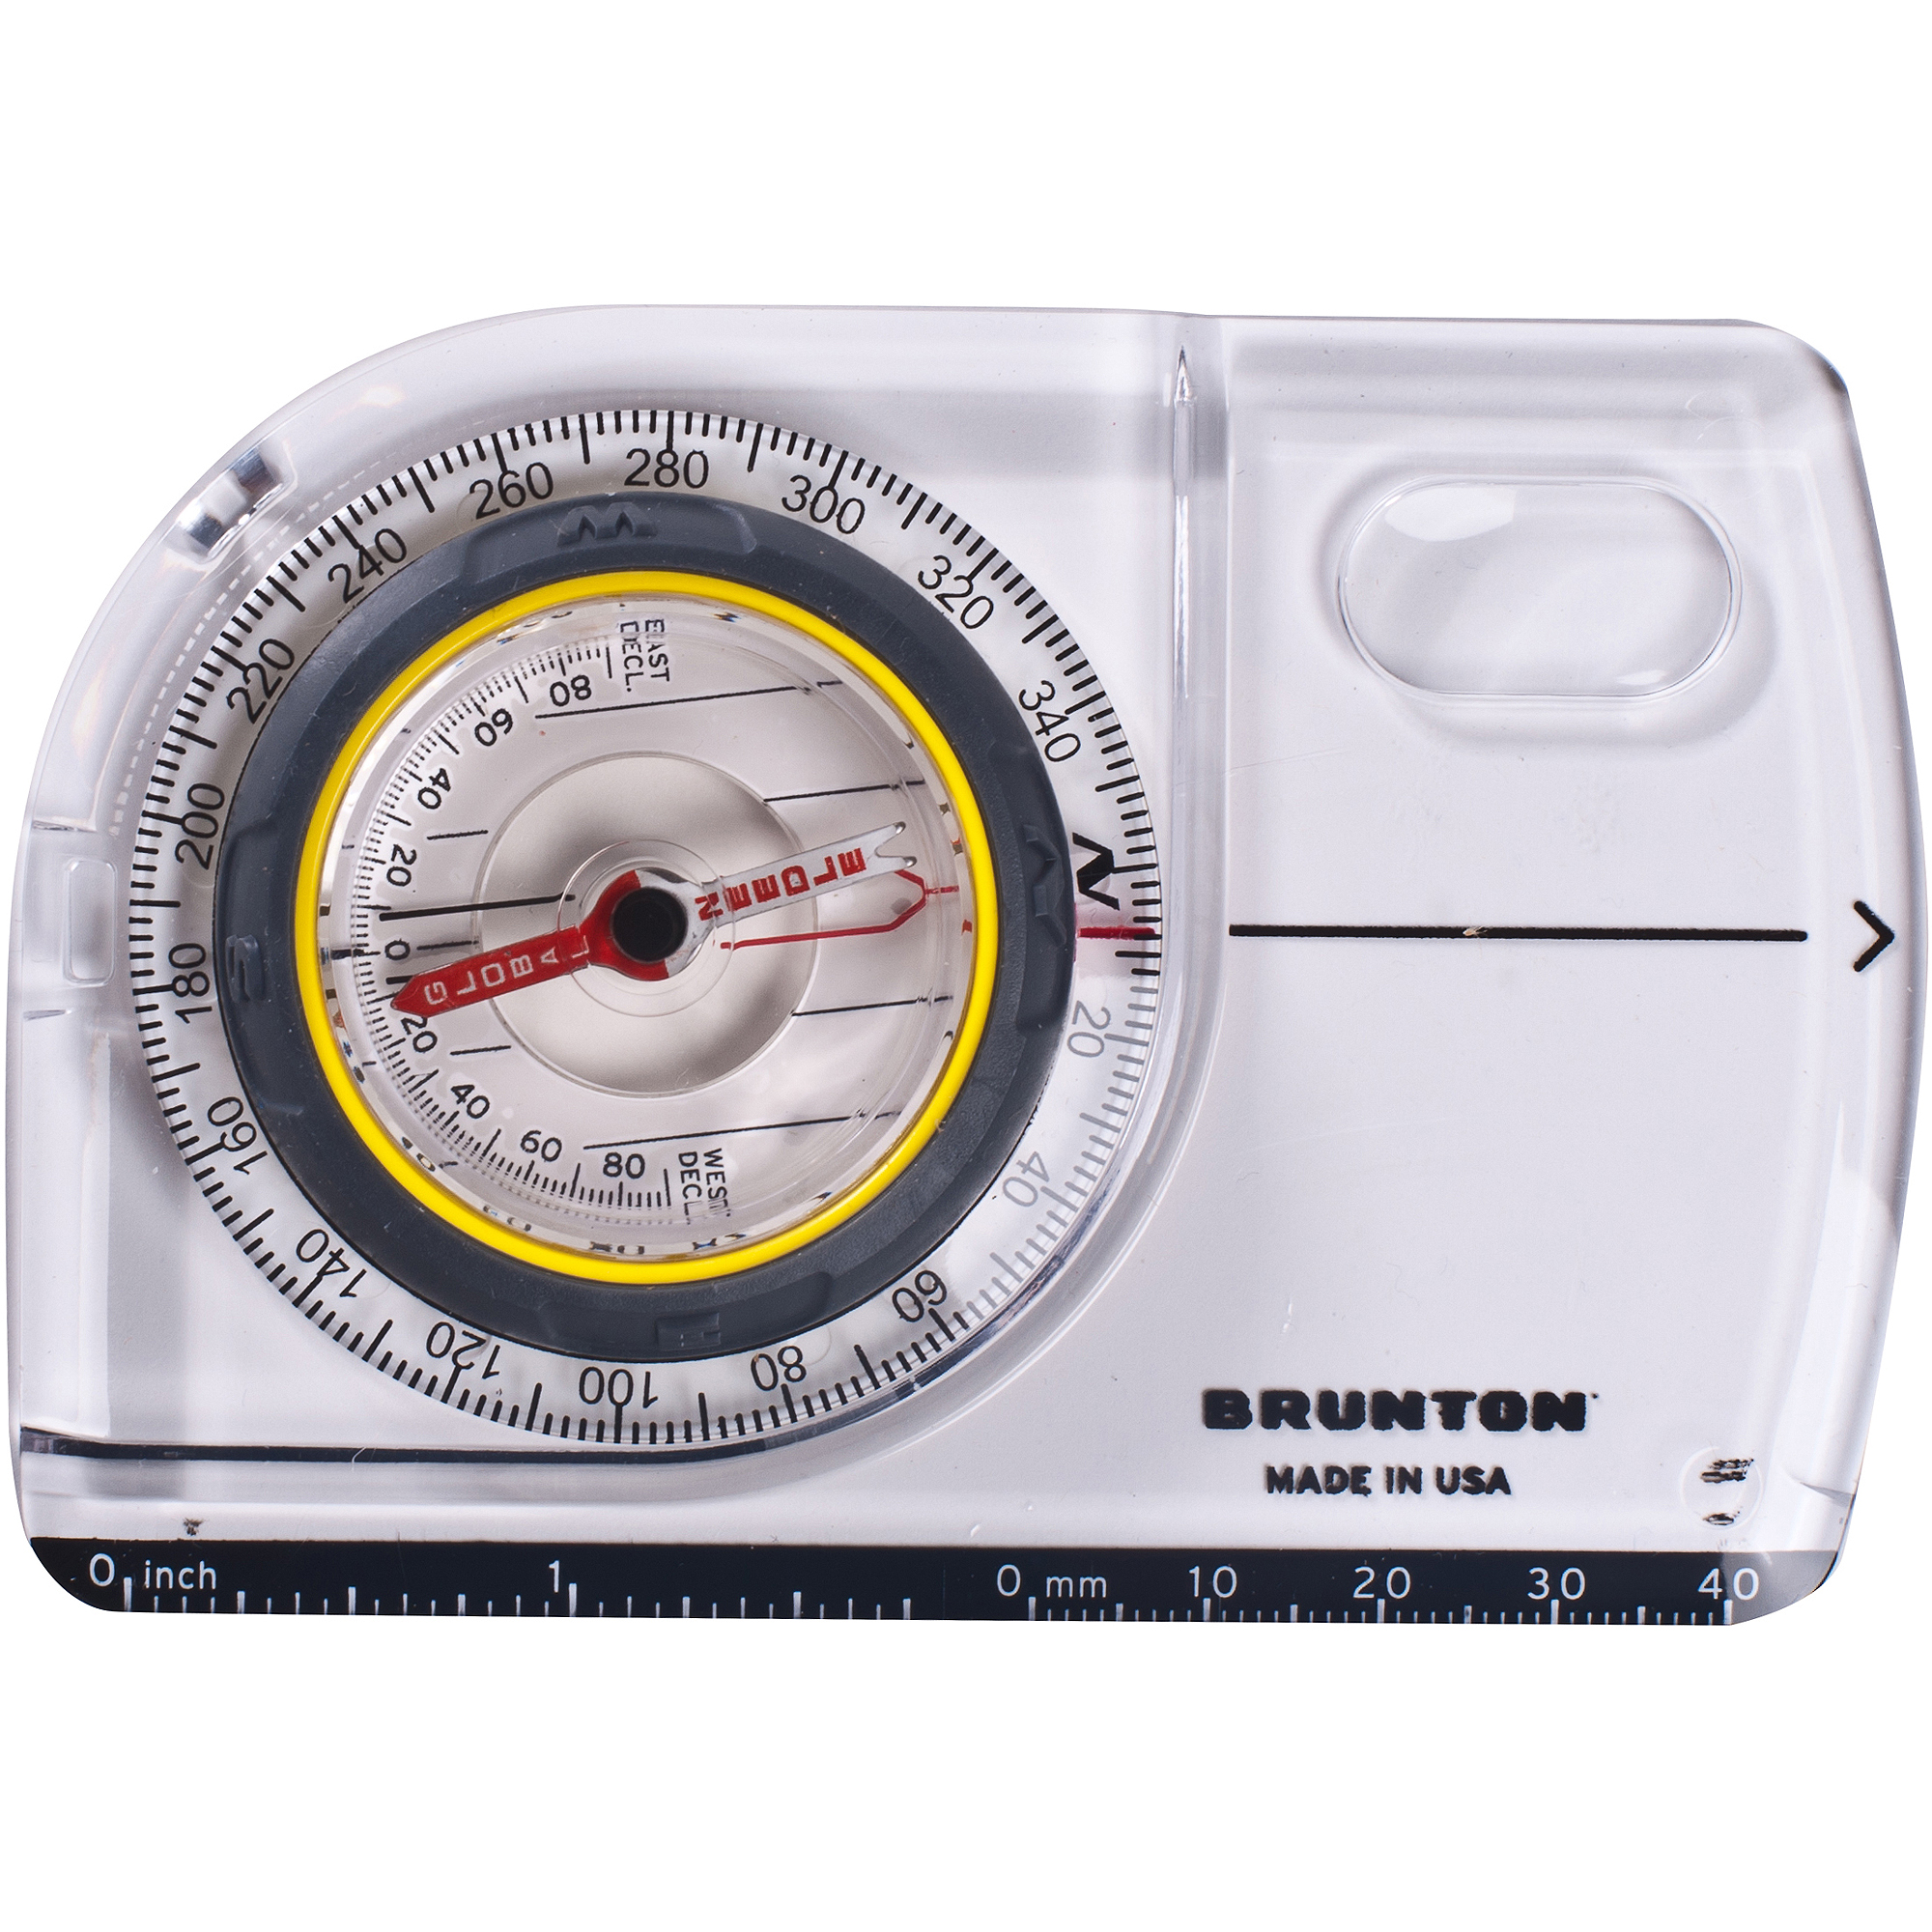 Brunton TruArc5 Baseplate Compass with Global Needle, Map Mag and Standard Metric Scales by Generic